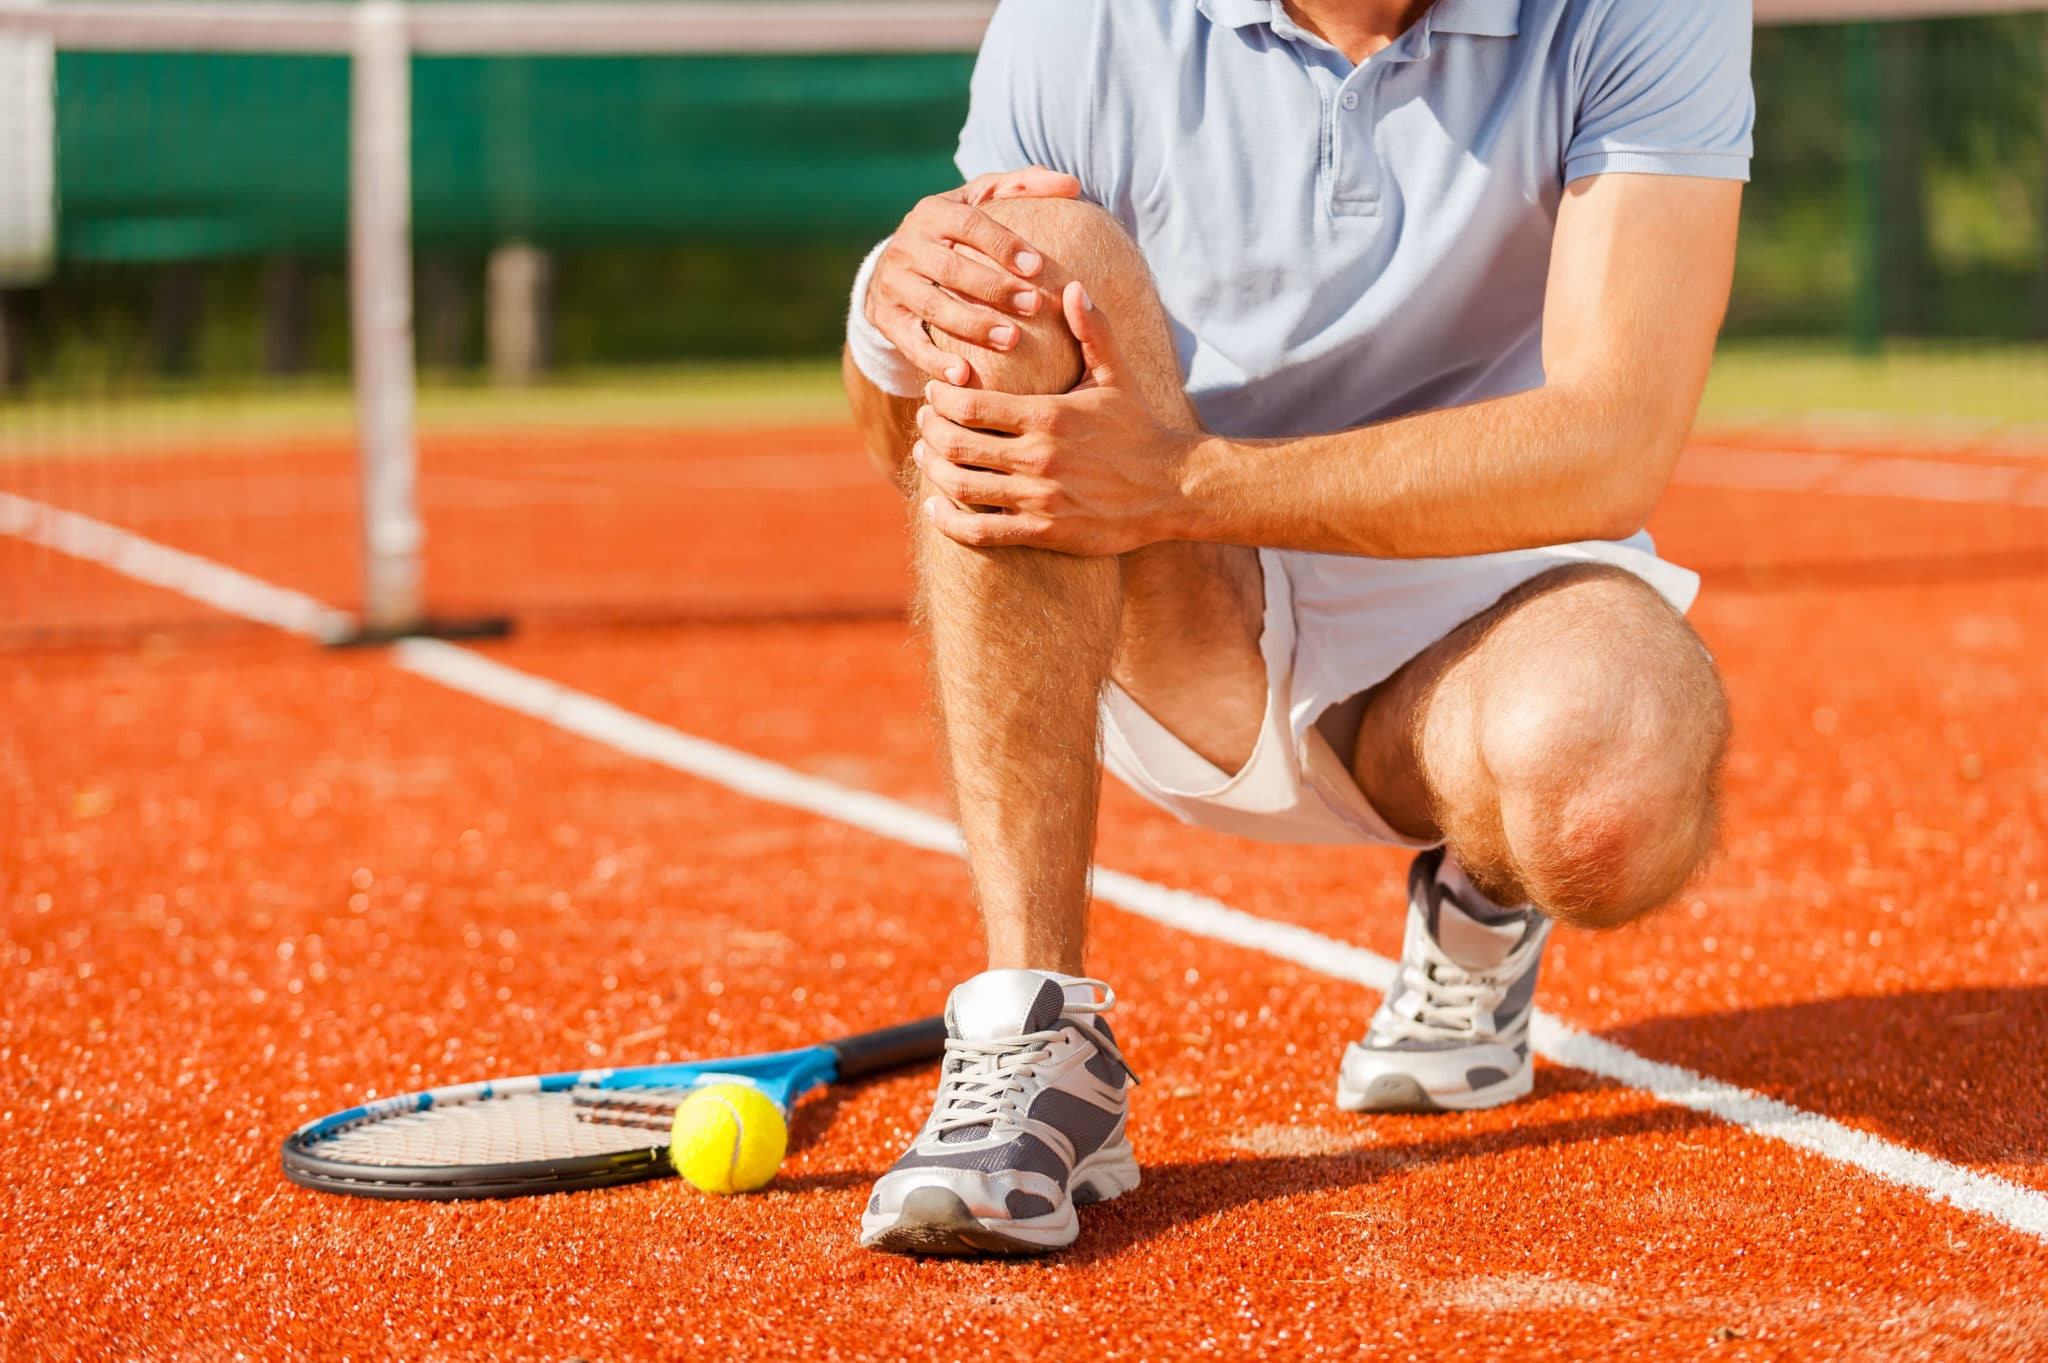 managing a sports injury, Stay Off the Sideline: 3 Tips to Help Manage a Sports Injury